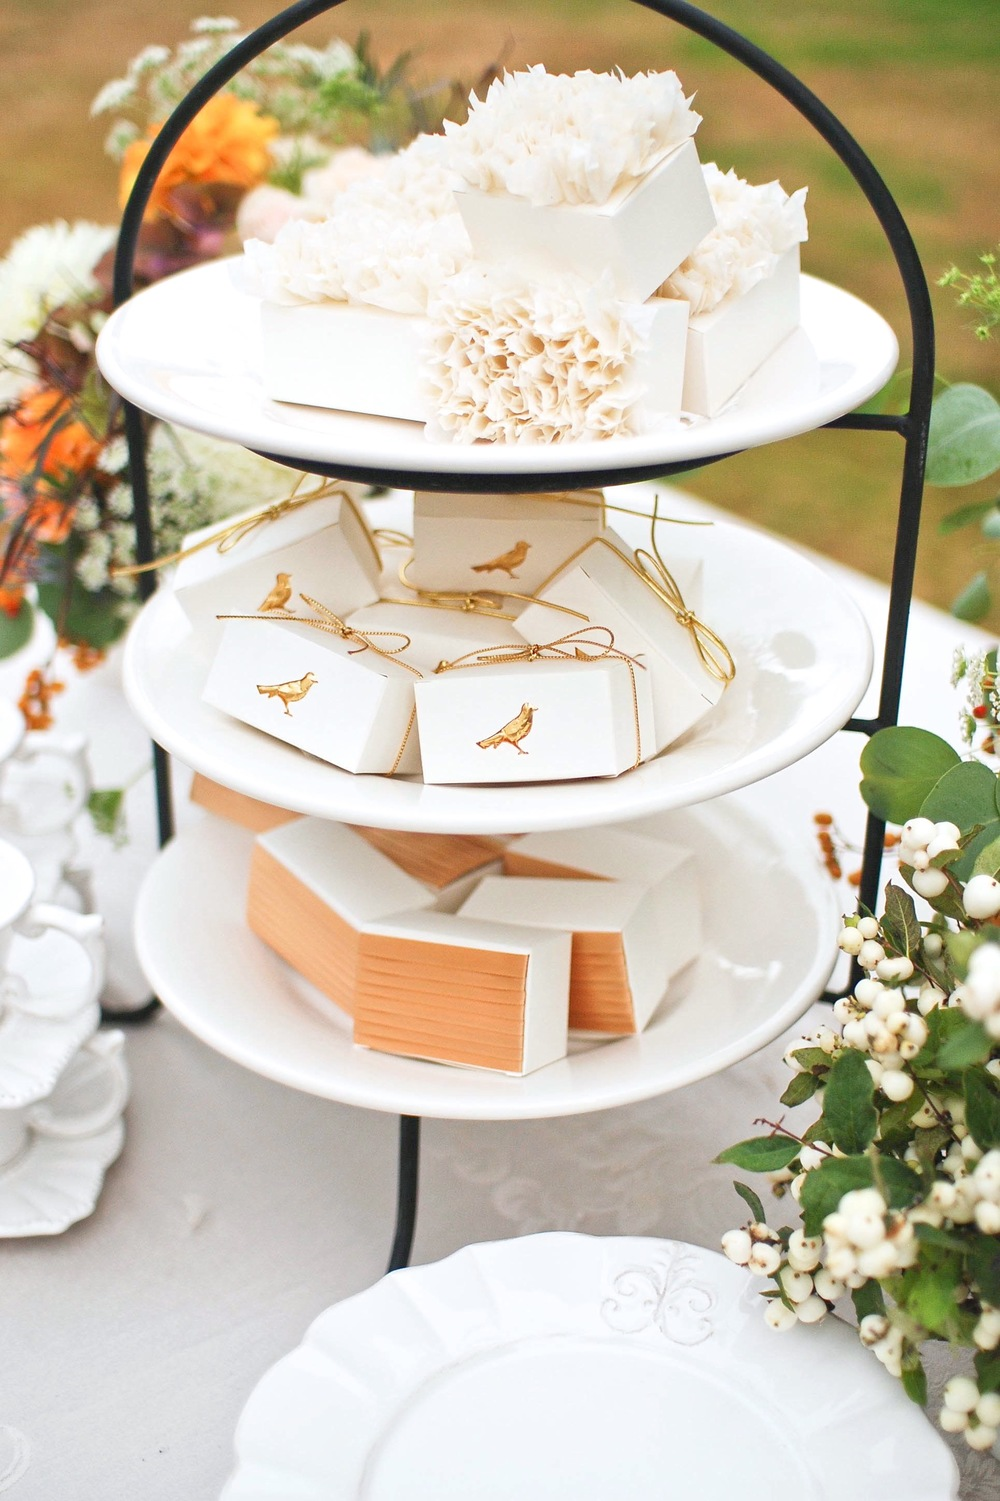 Piled together, these favor boxes create a stunning display.